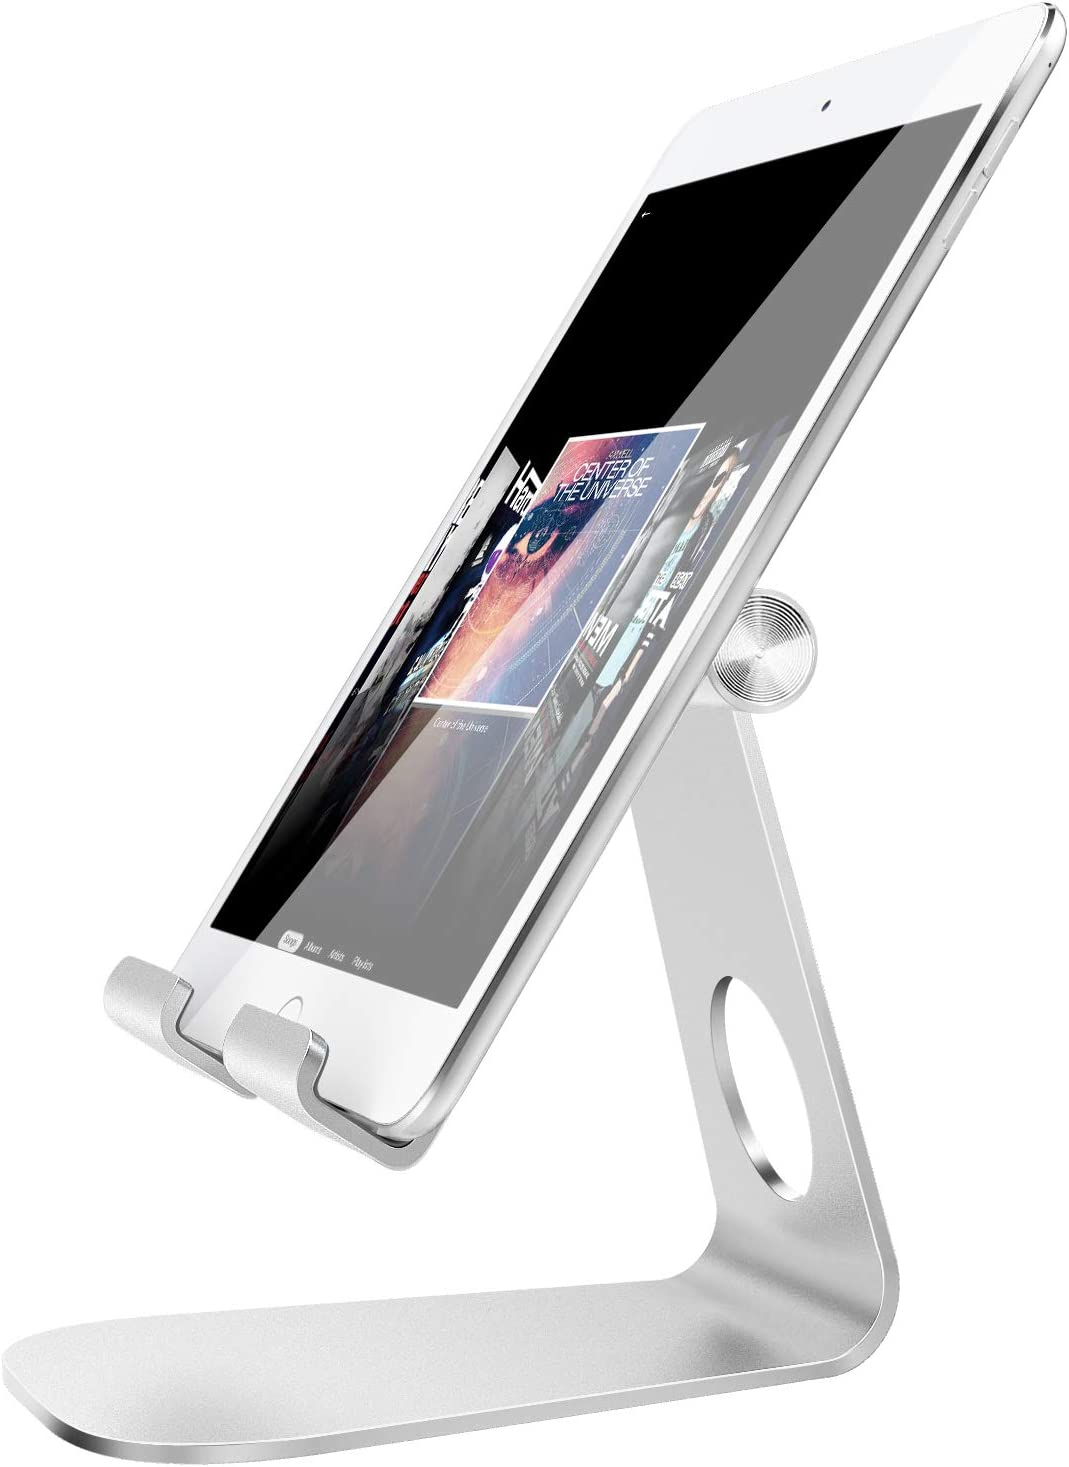 """MoKo Tablet Stand, 210 Degree Multi-Angle Rotatable Phone Desktop Holder Fit iPhone 11 Pro Max/11 Pro/11, iPhone Xs/XS Max/XR/X, iPhone SE 2020, iPad Pro 11 2020/Air 3/Mini 5, Galaxy S20 6.2"""", Silver"""